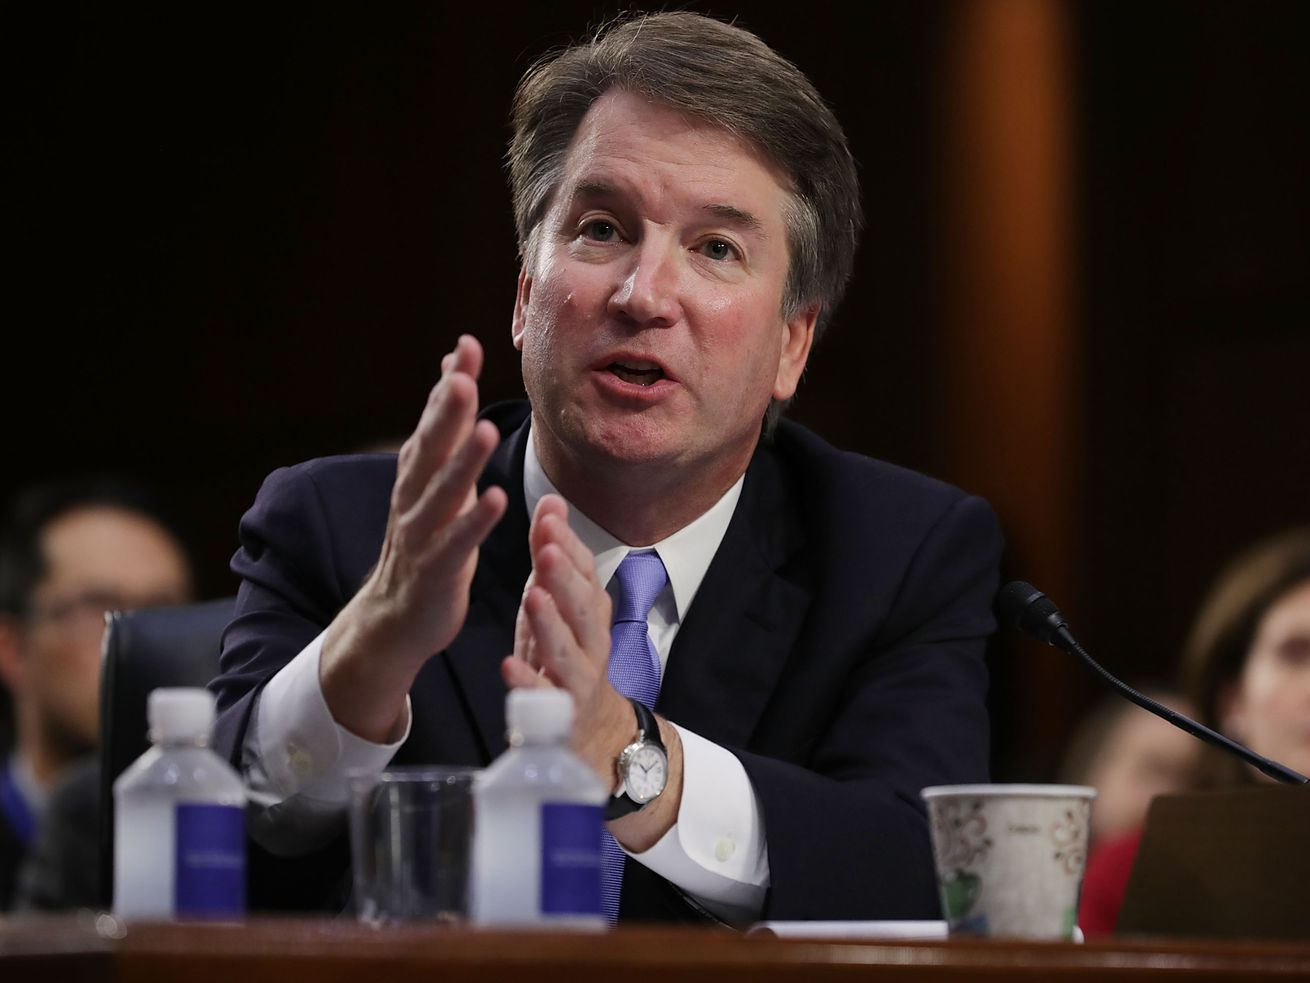 Supreme Court nominee Judge Brett Kavanaugh during his confirmation hearing on September 6, 2018.